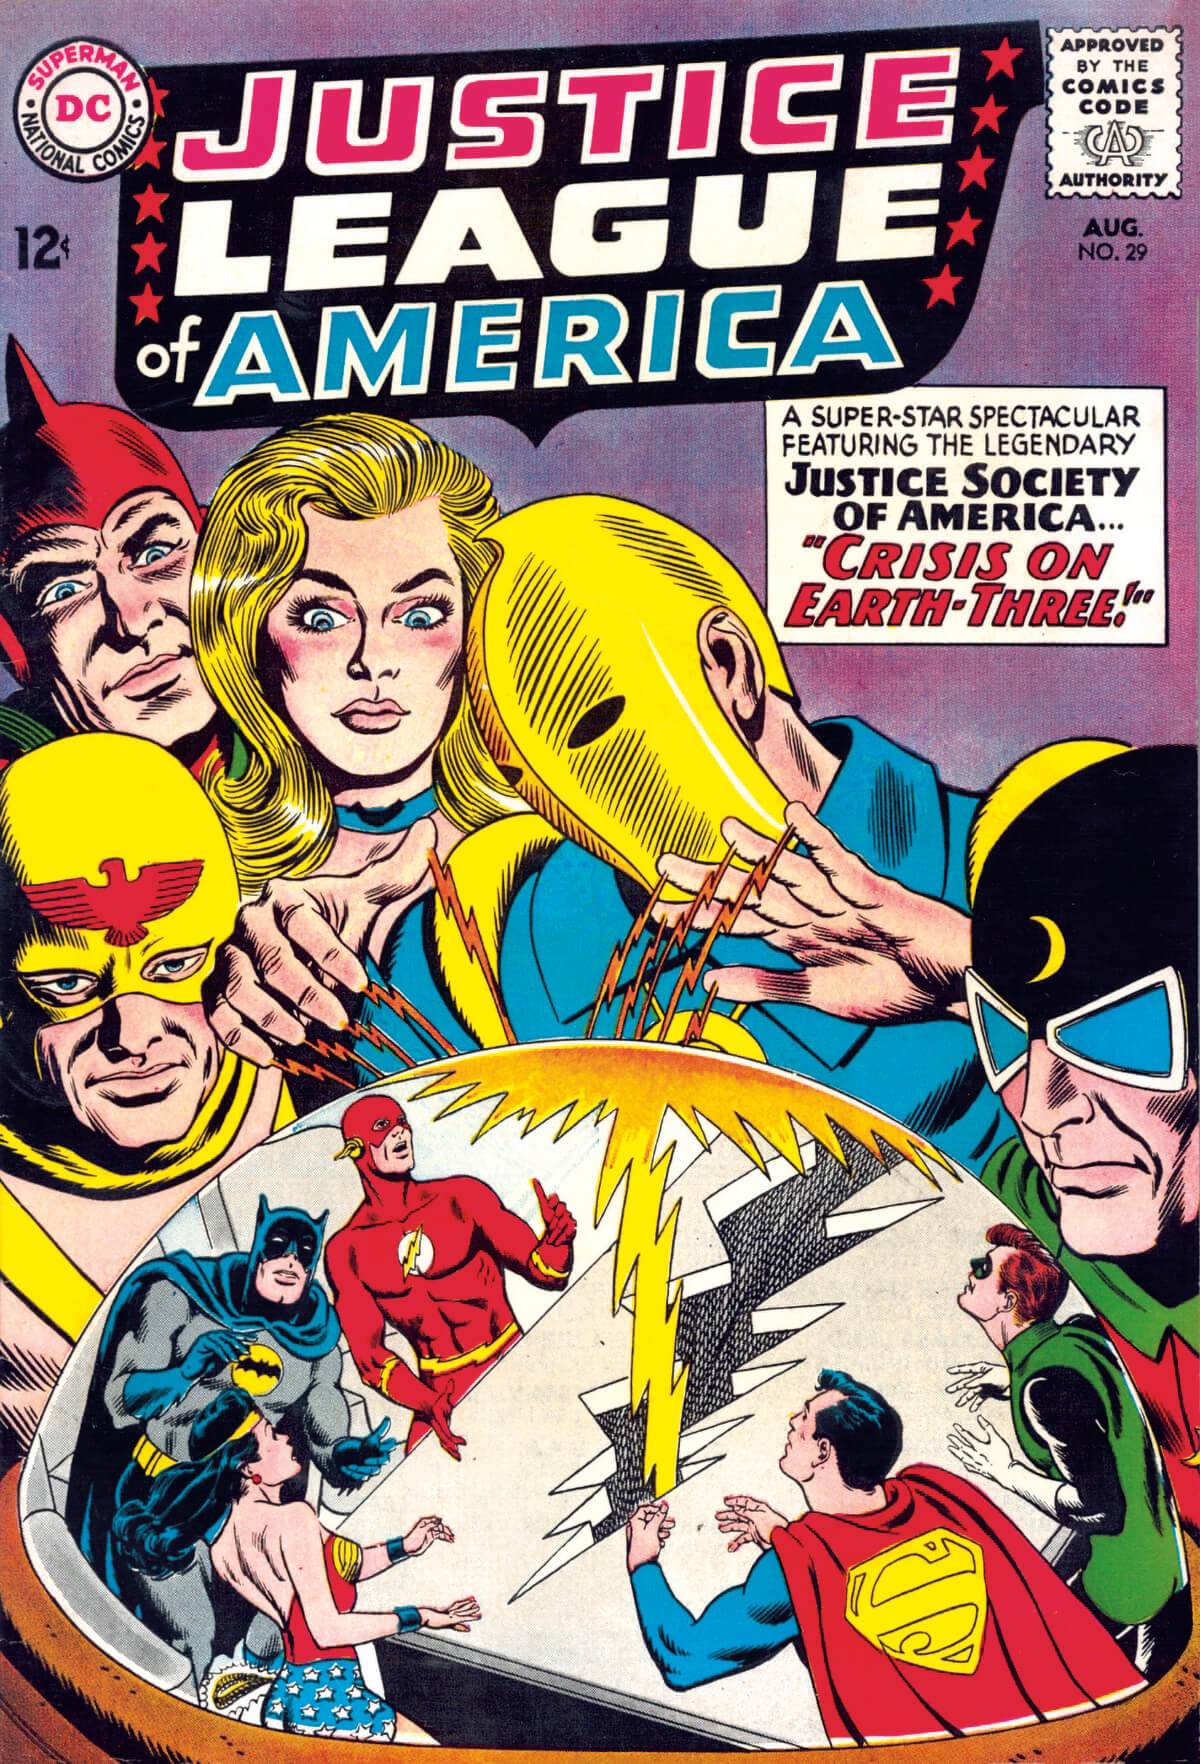 Justice League of America 29 by Murphy Anderson